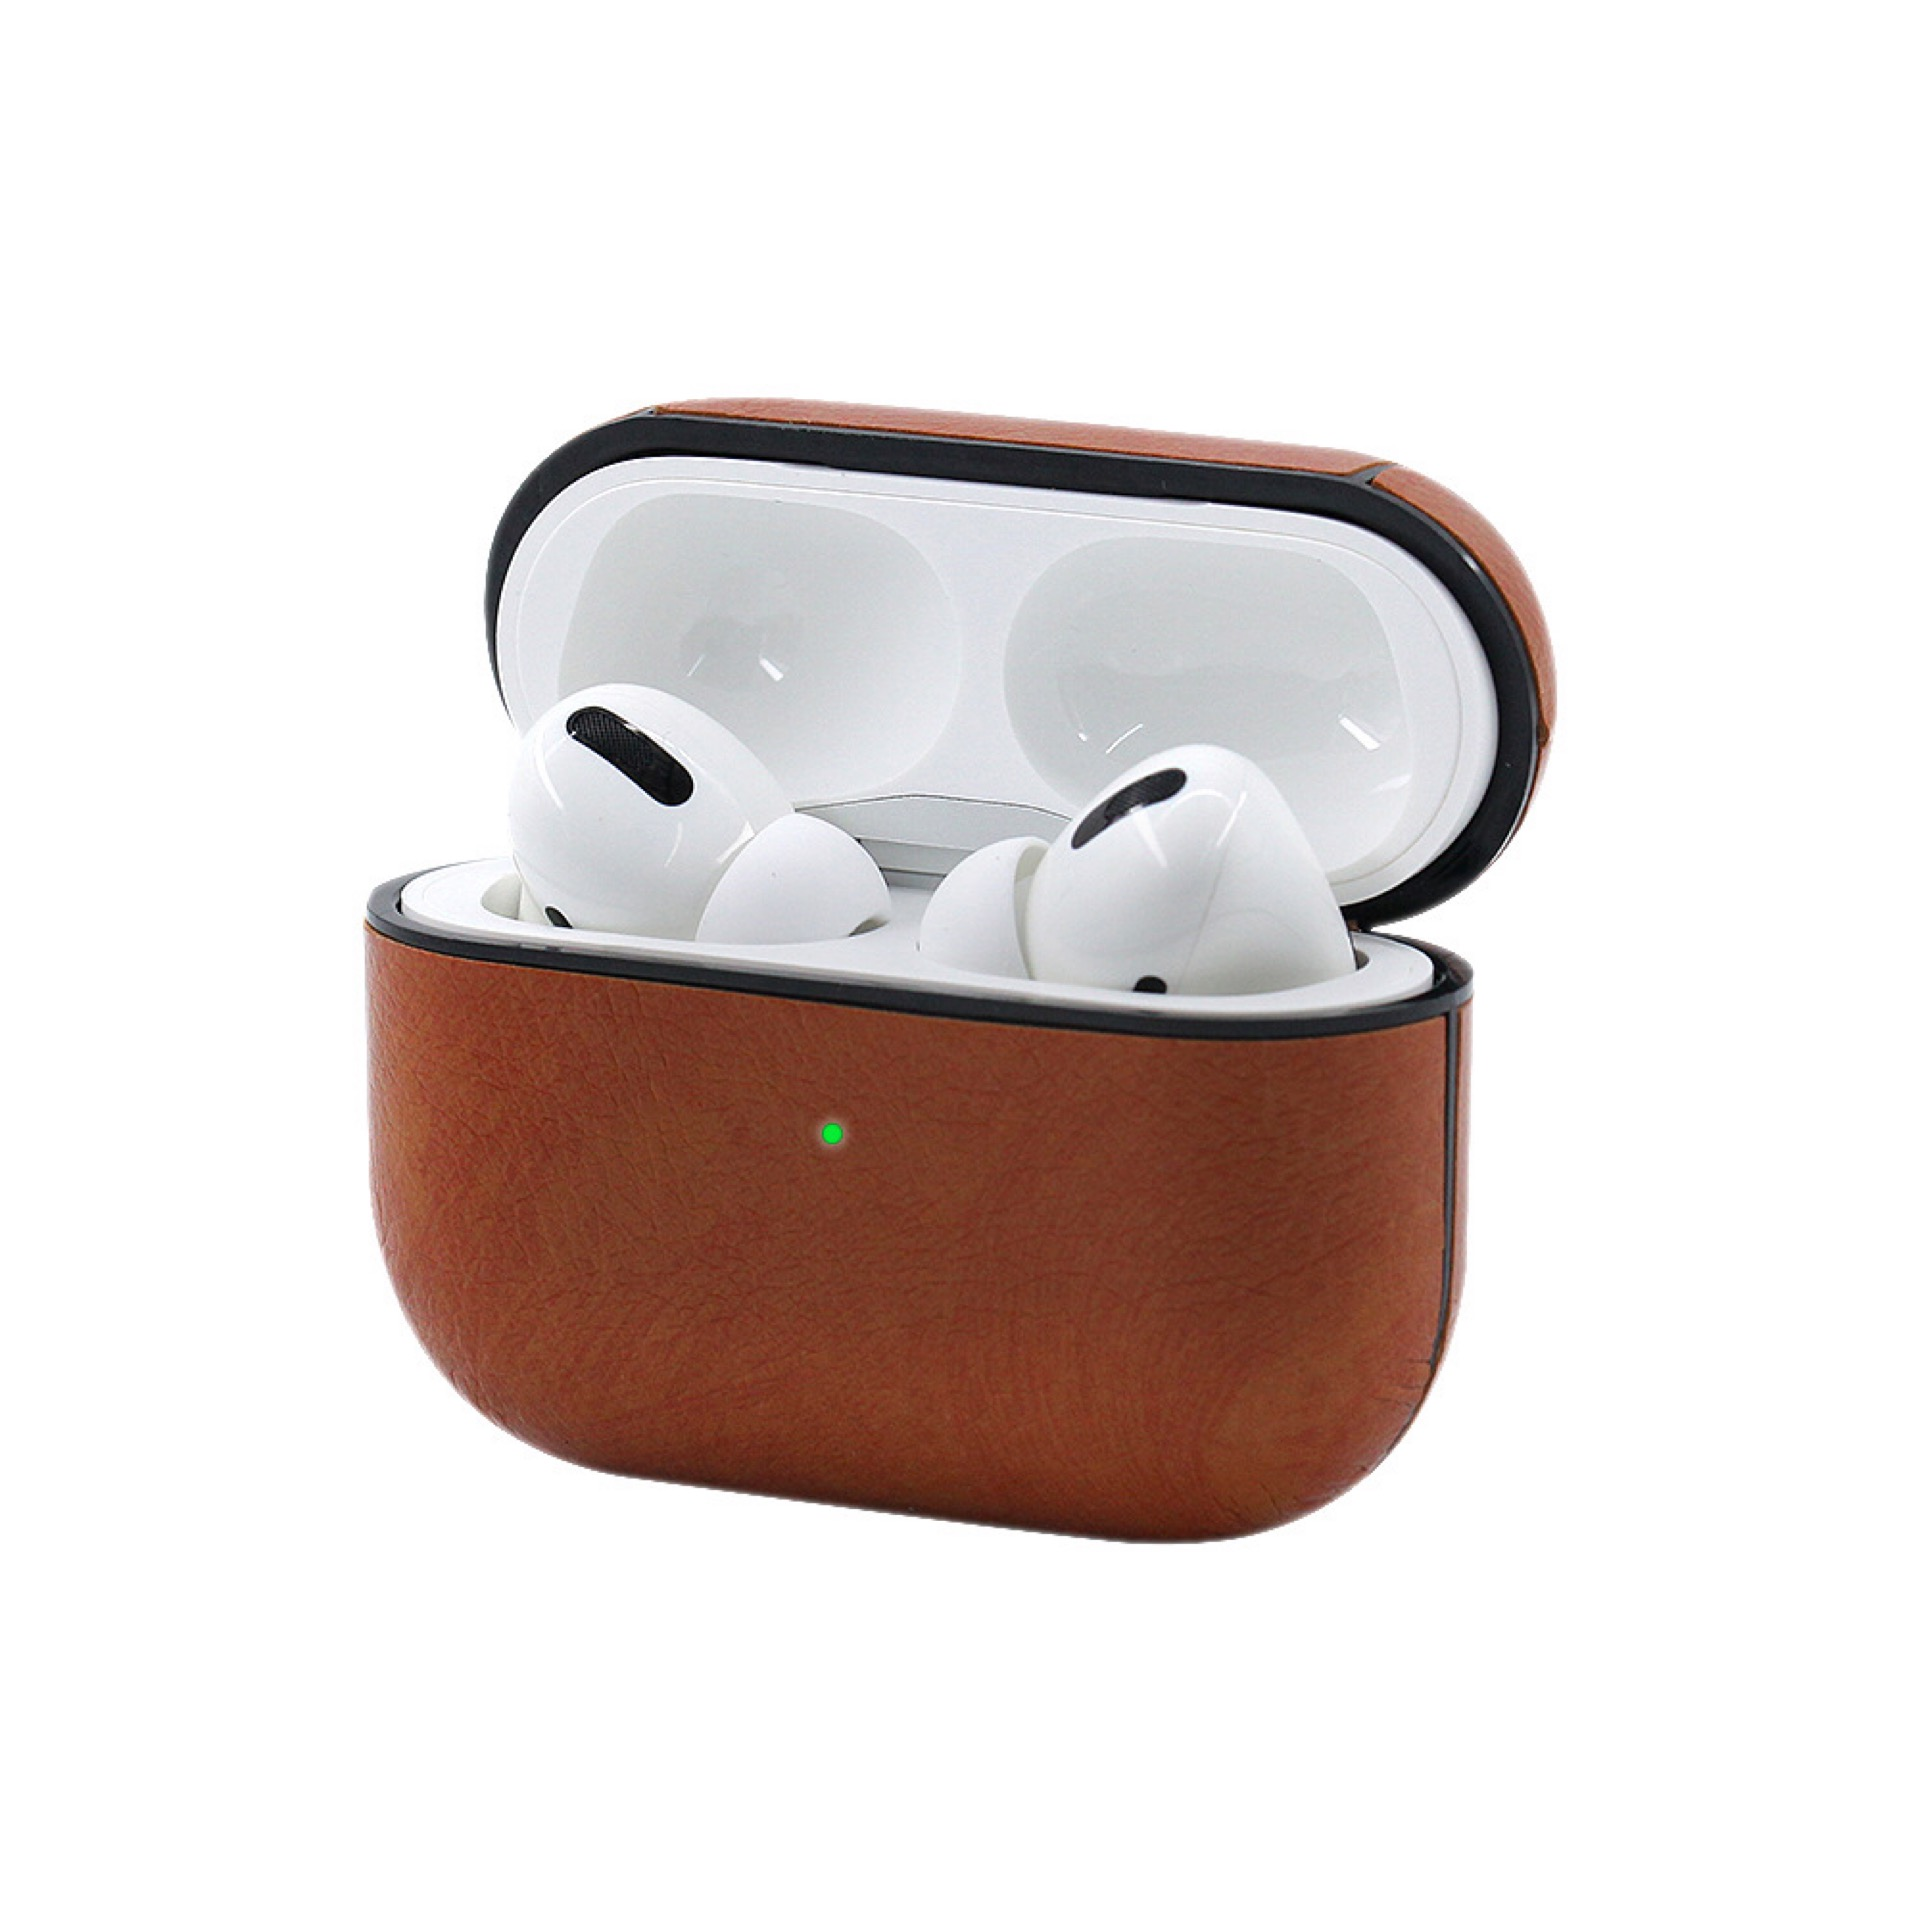 Puffycute leather airpods pro case 6